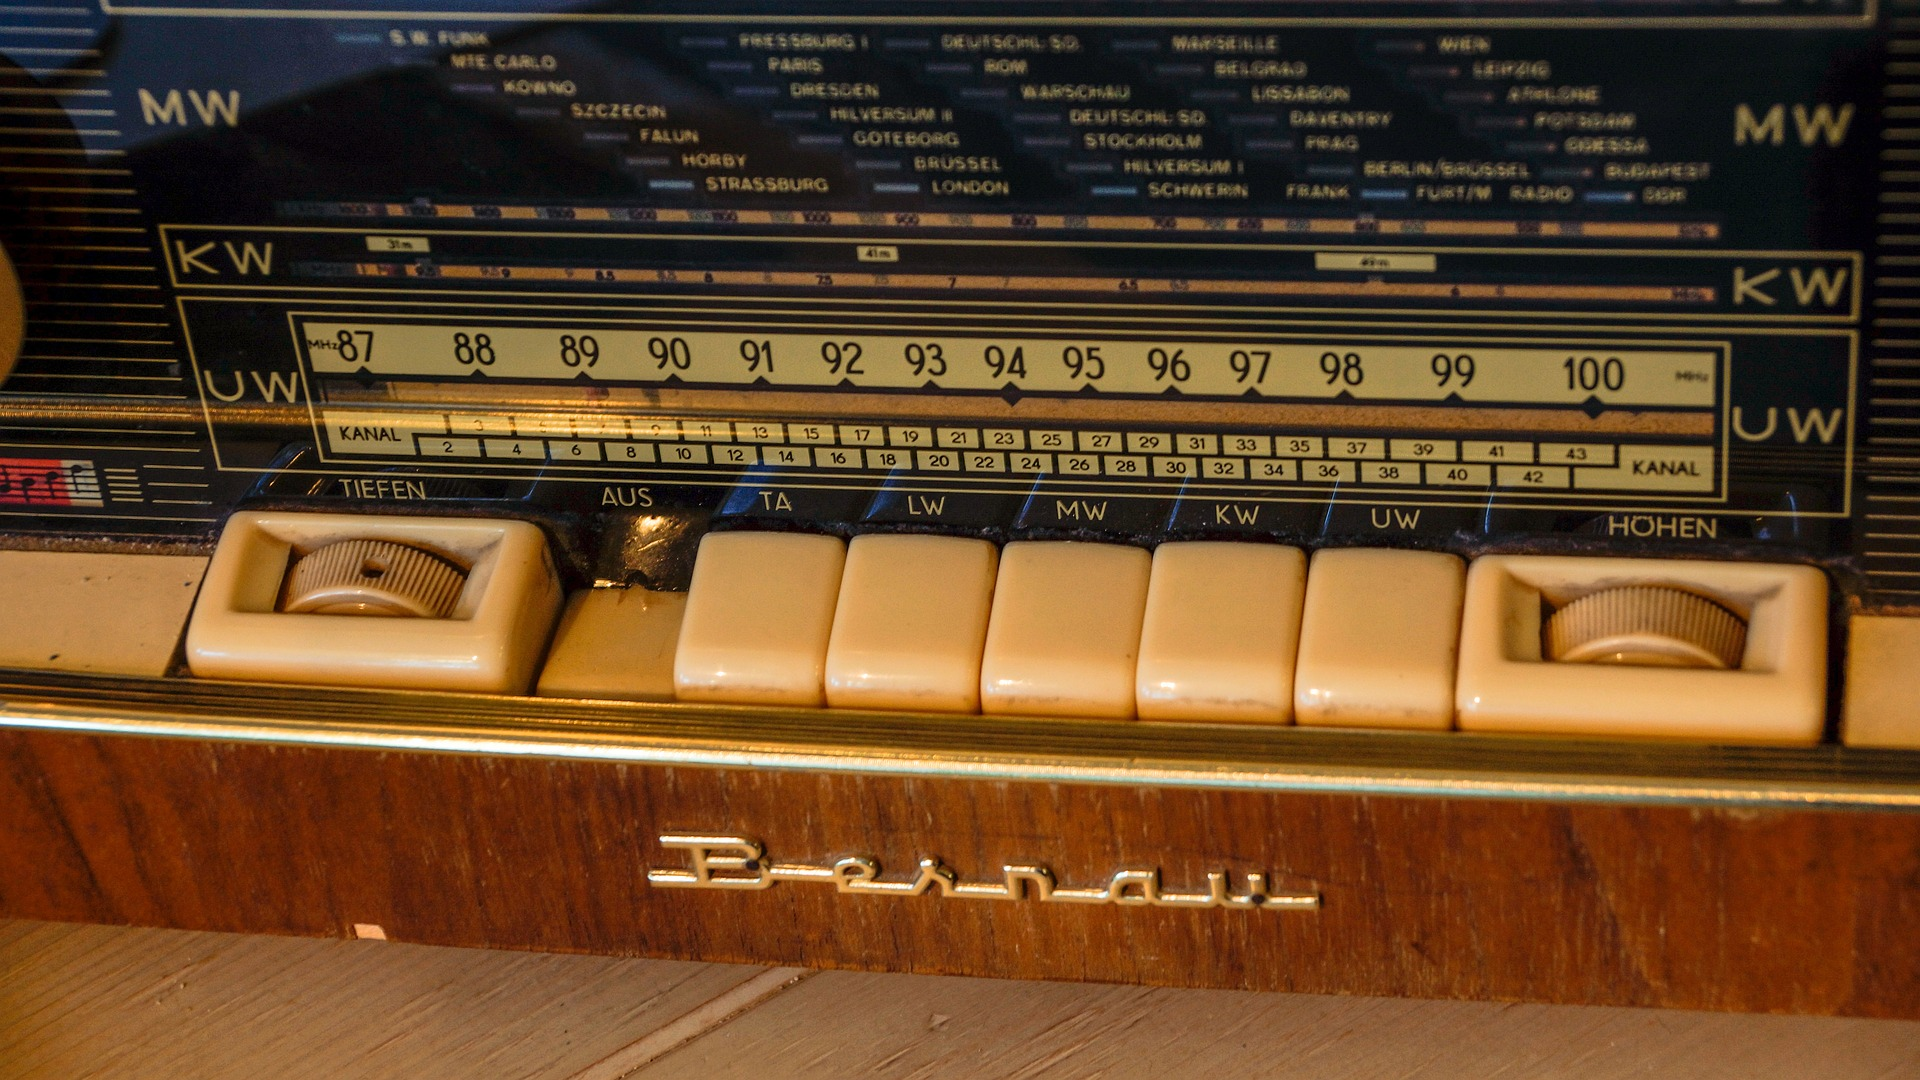 Radio-Retro Quelle: pixabay